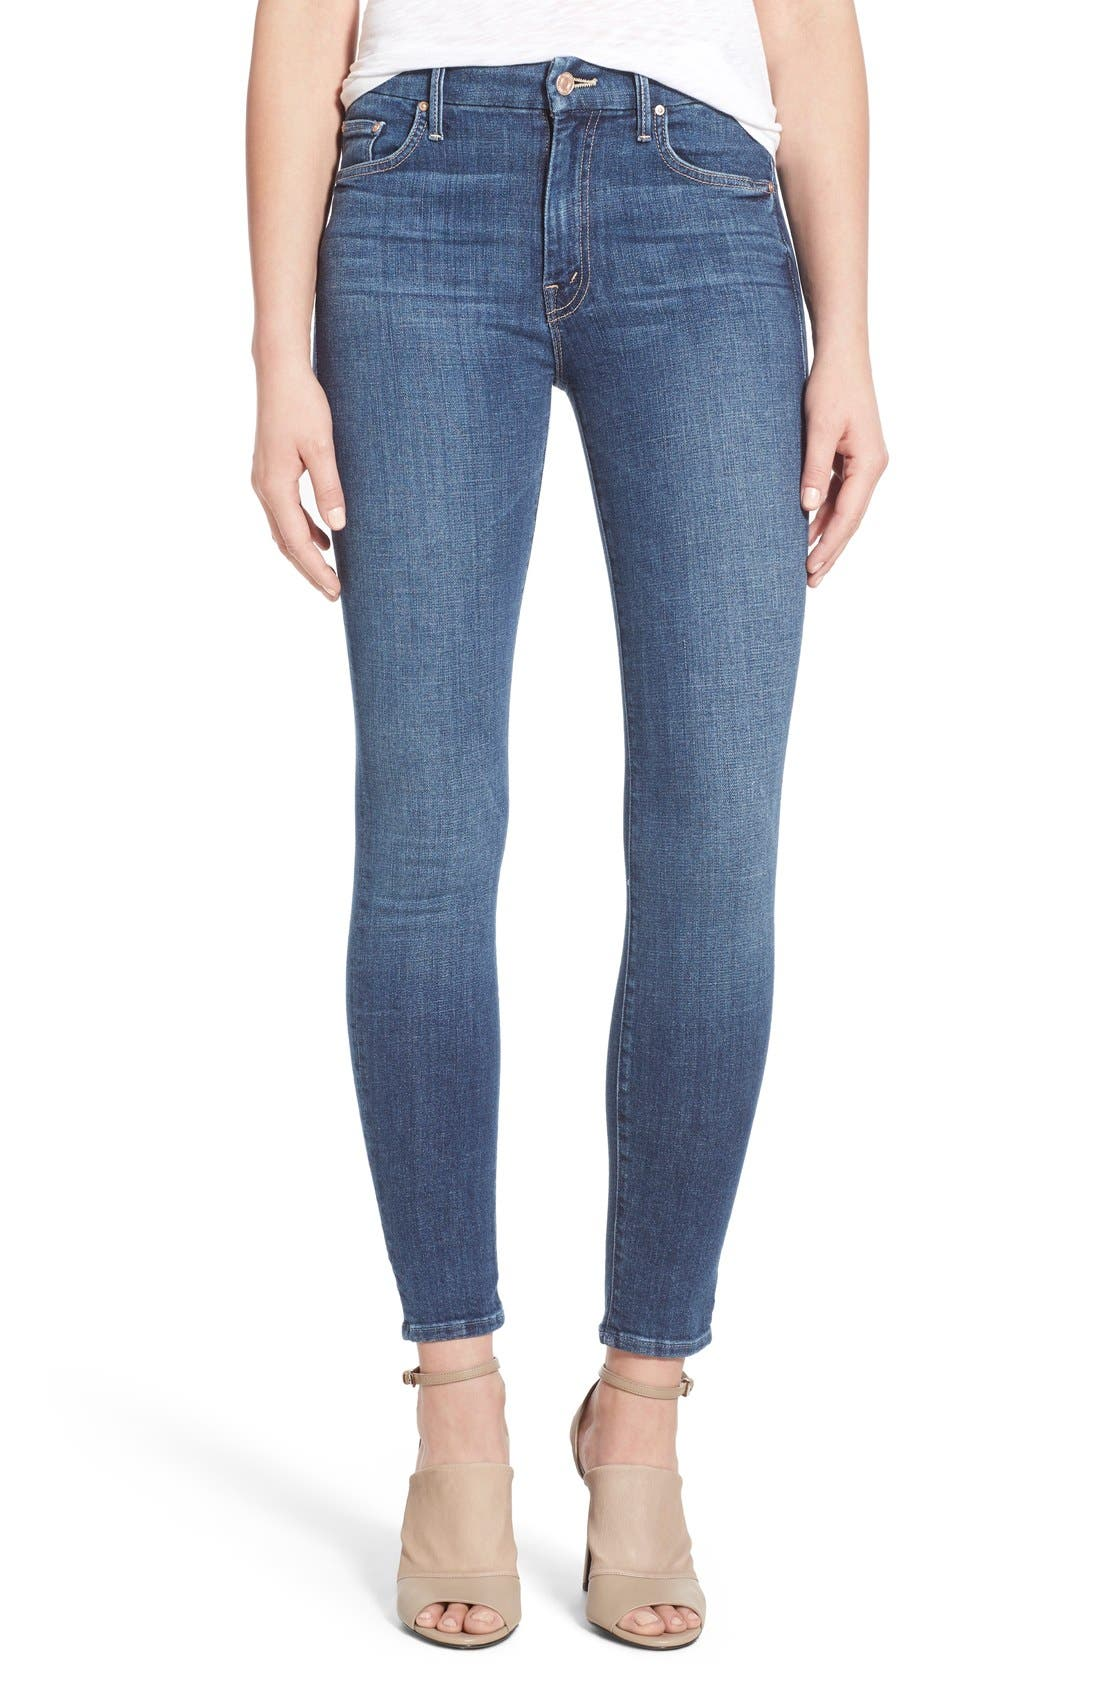 Main Image - MOTHER 'The Looker' High Rise Skinny Jeans (Girl Crush)